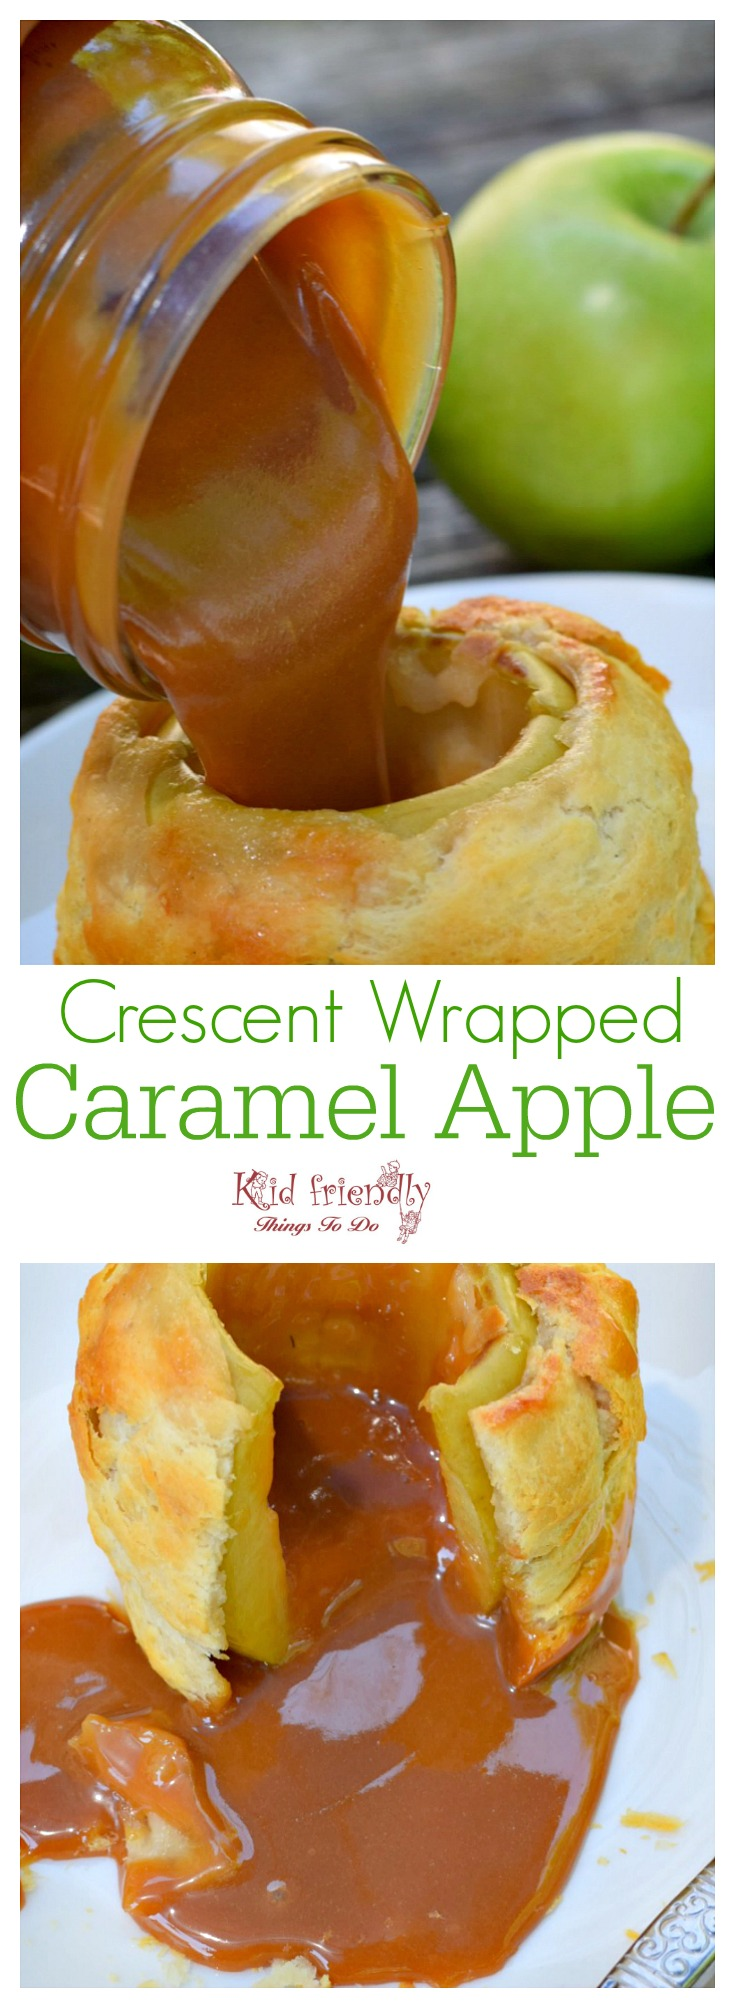 How to Make Homemade Crescent wrapped apples filled with caramel - Delicious and fun dessert - Easy to make www.kidfriendlythingstodo.com